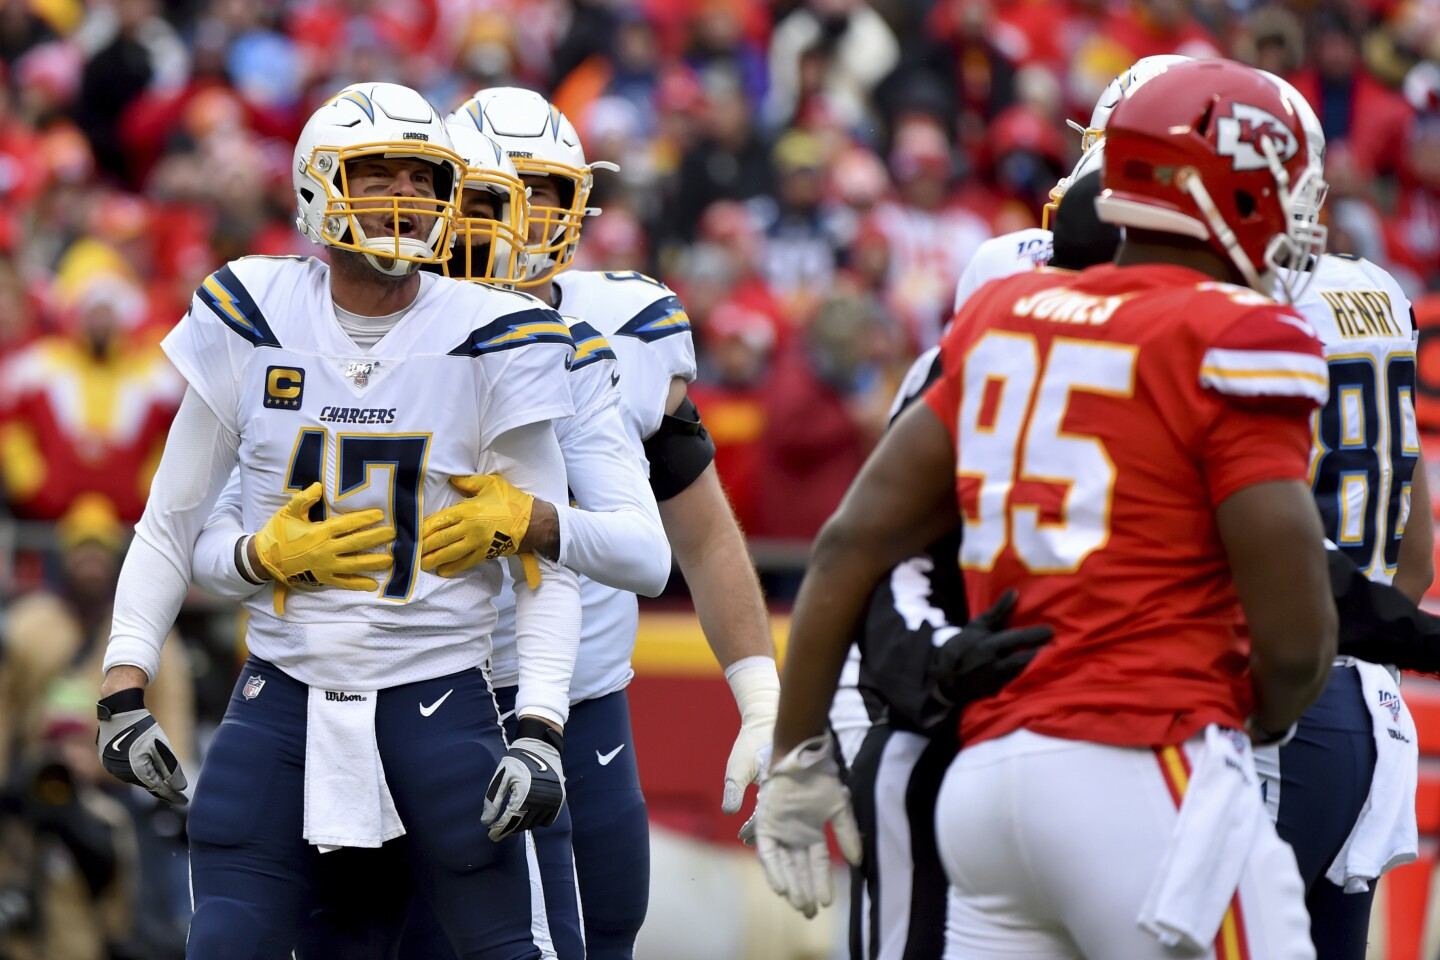 Los Angeles Chargers quarterback Philip Rivers (17) is held back by a teammate as he yells at Kansas City Chiefs defensive tackle Chris Jones (95) during the first half of an NFL football game in Kansas City, Mo., Sunday, Dec. 29, 2019. (AP Photo/Ed Zurga)